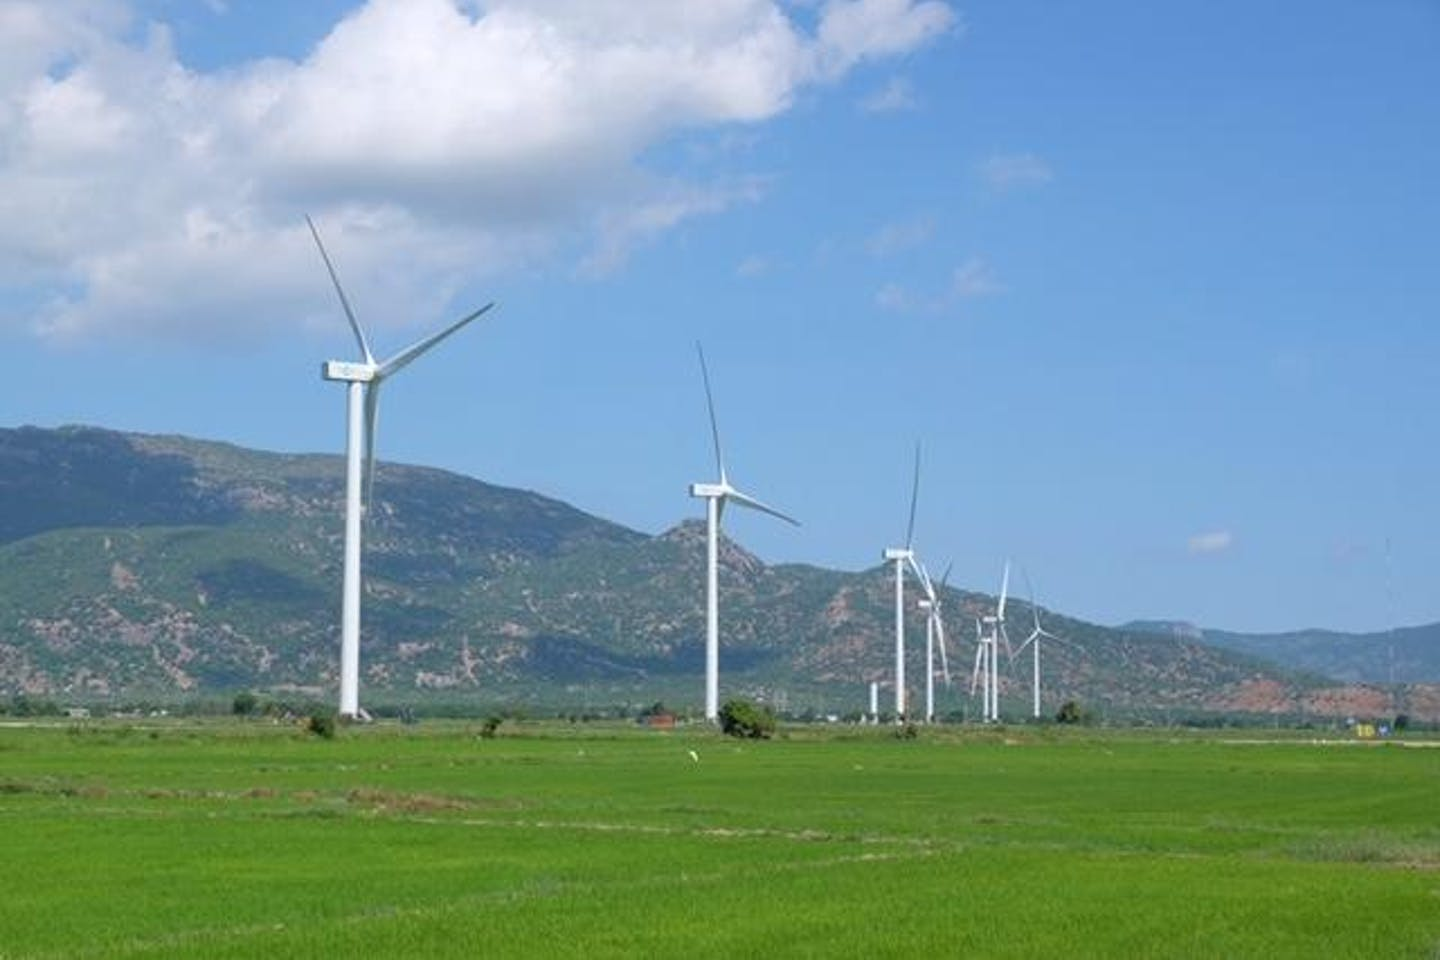 The array of wind turbines constructed for the Dam Nai Project in Ninh Thuan Province, South Vietnam. Photo by The Blue Circle.